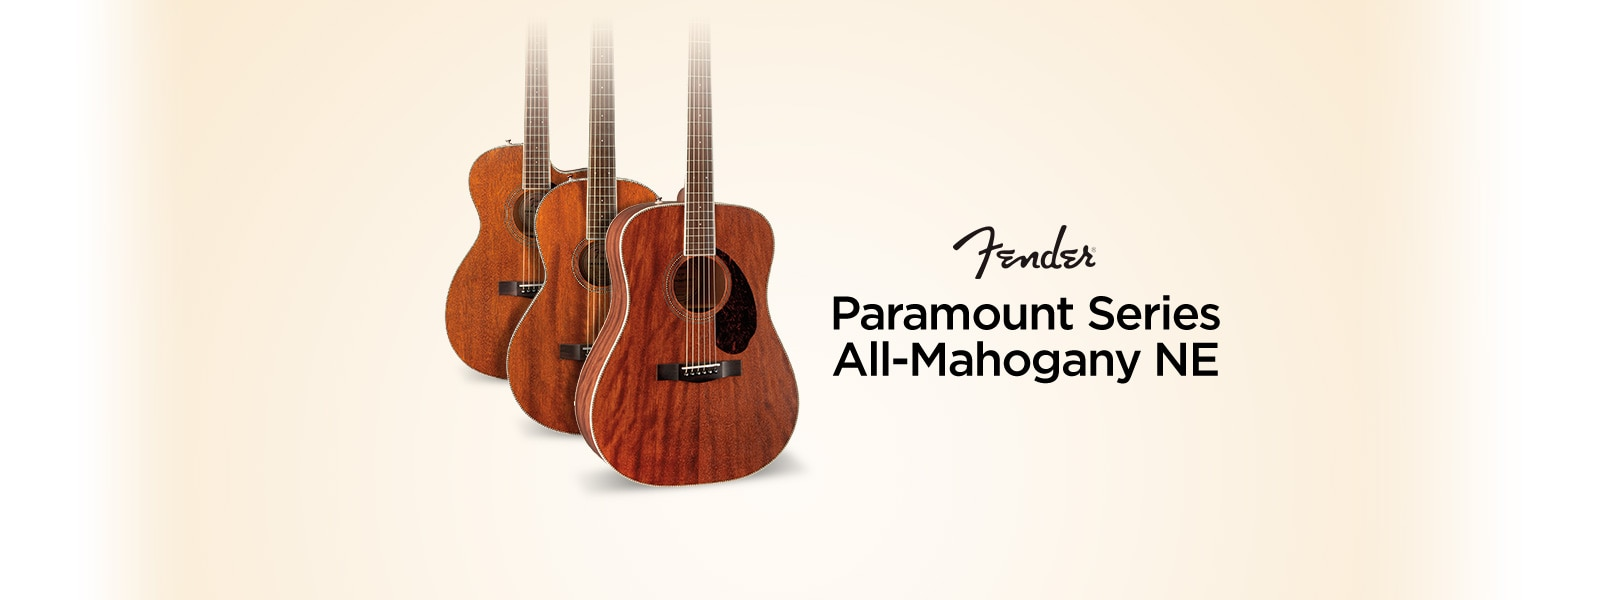 Paramount Series All Mahogany